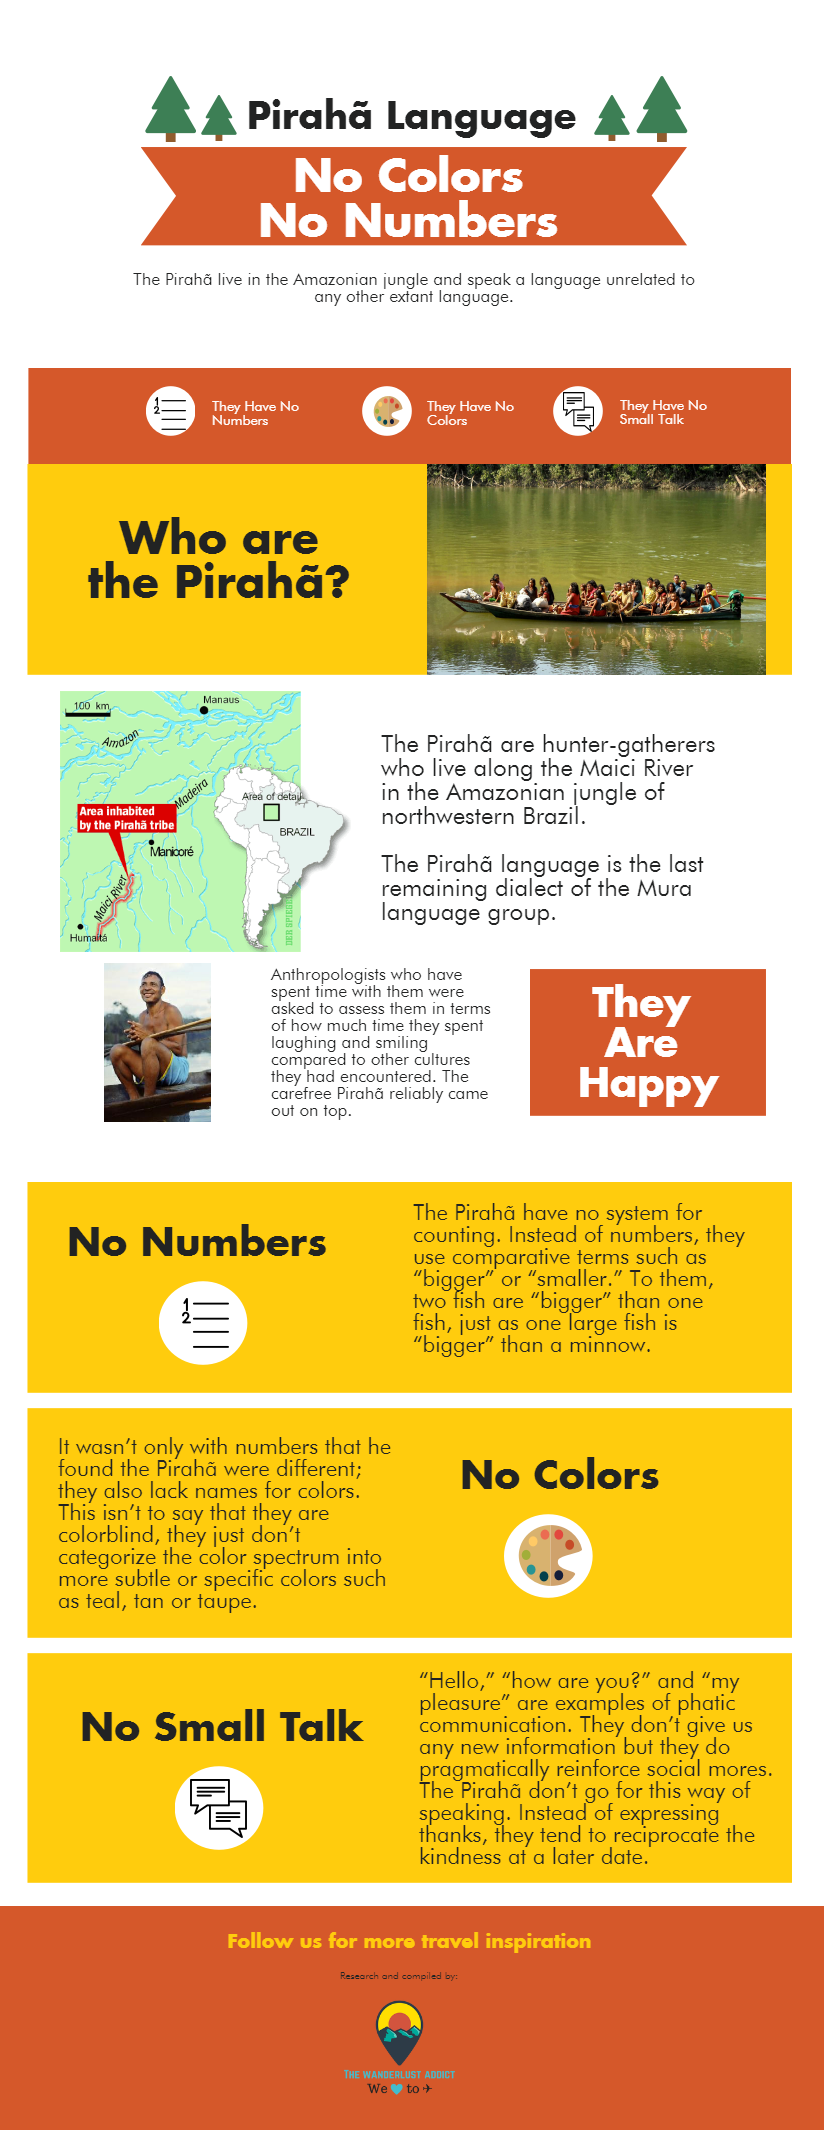 Piraha language infographic